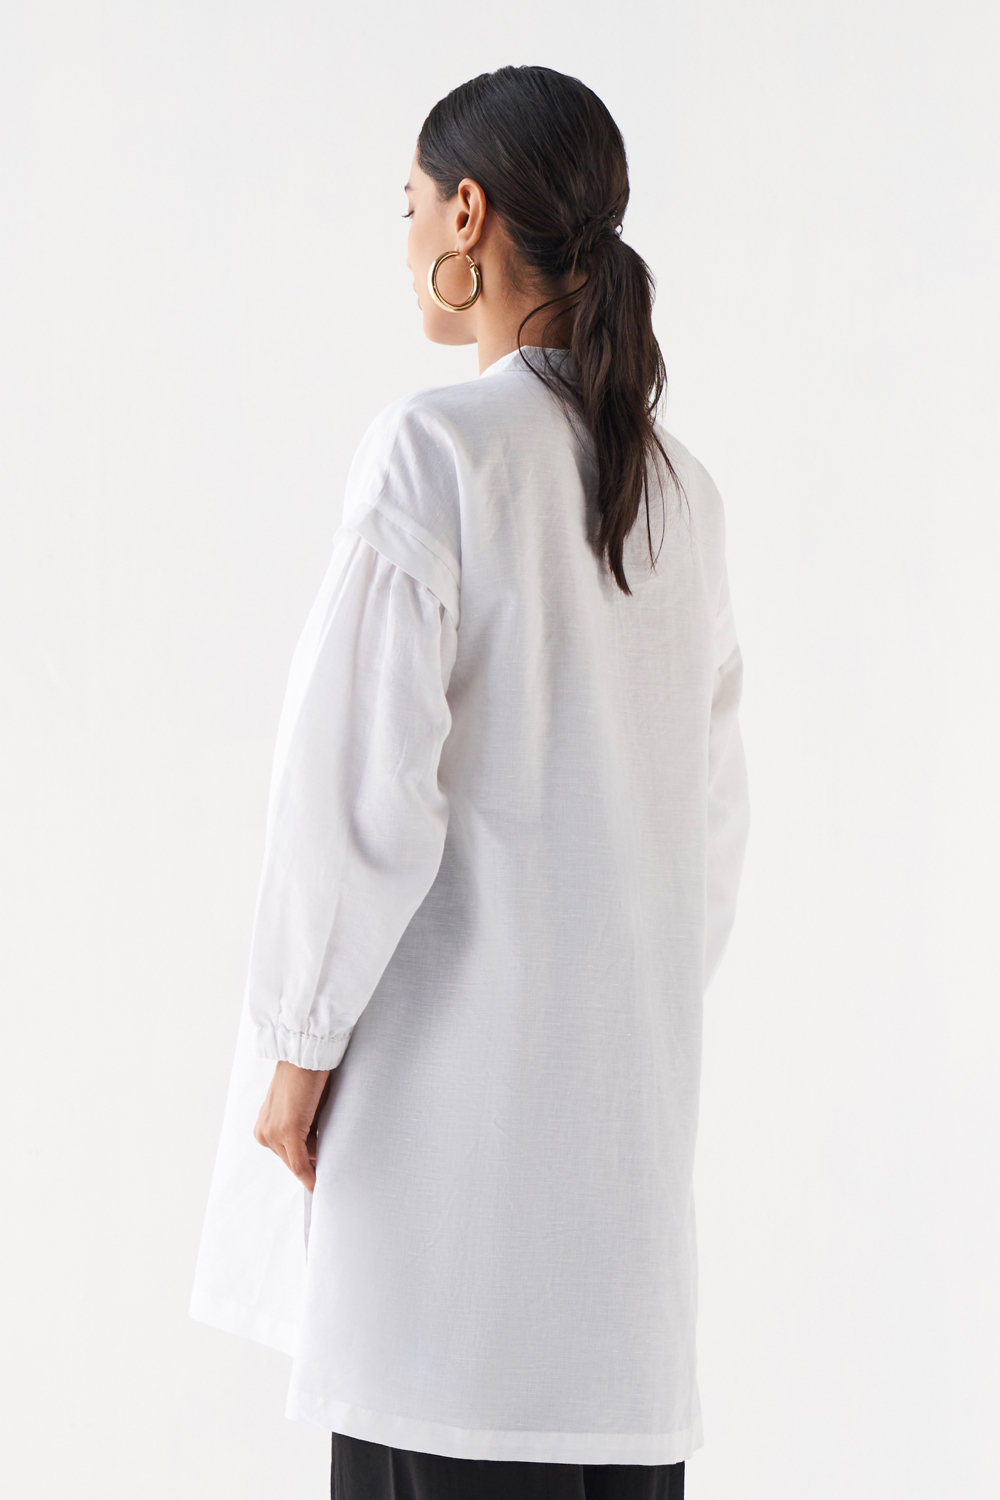 MARRAKESH SOLID WHITE LINEN FABRIC FULL SLEEVES FRONT OPENING TUNIC WITH COLLAR AND POCKETS